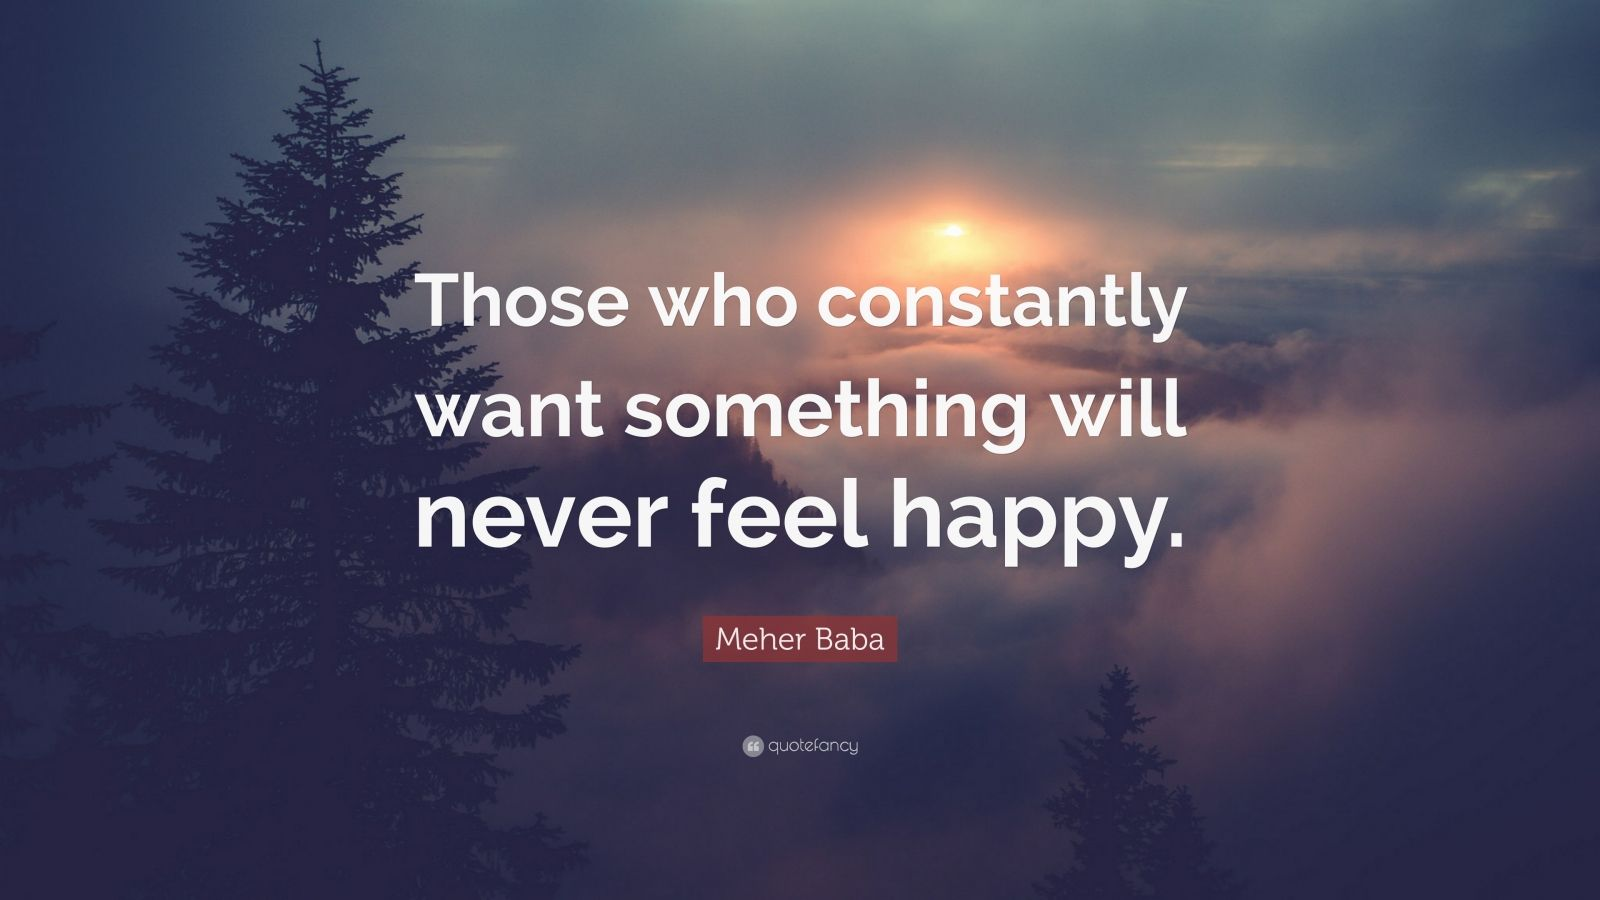 """Meher Baba Quote: """"Those who constantly want something will never feel happy."""""""